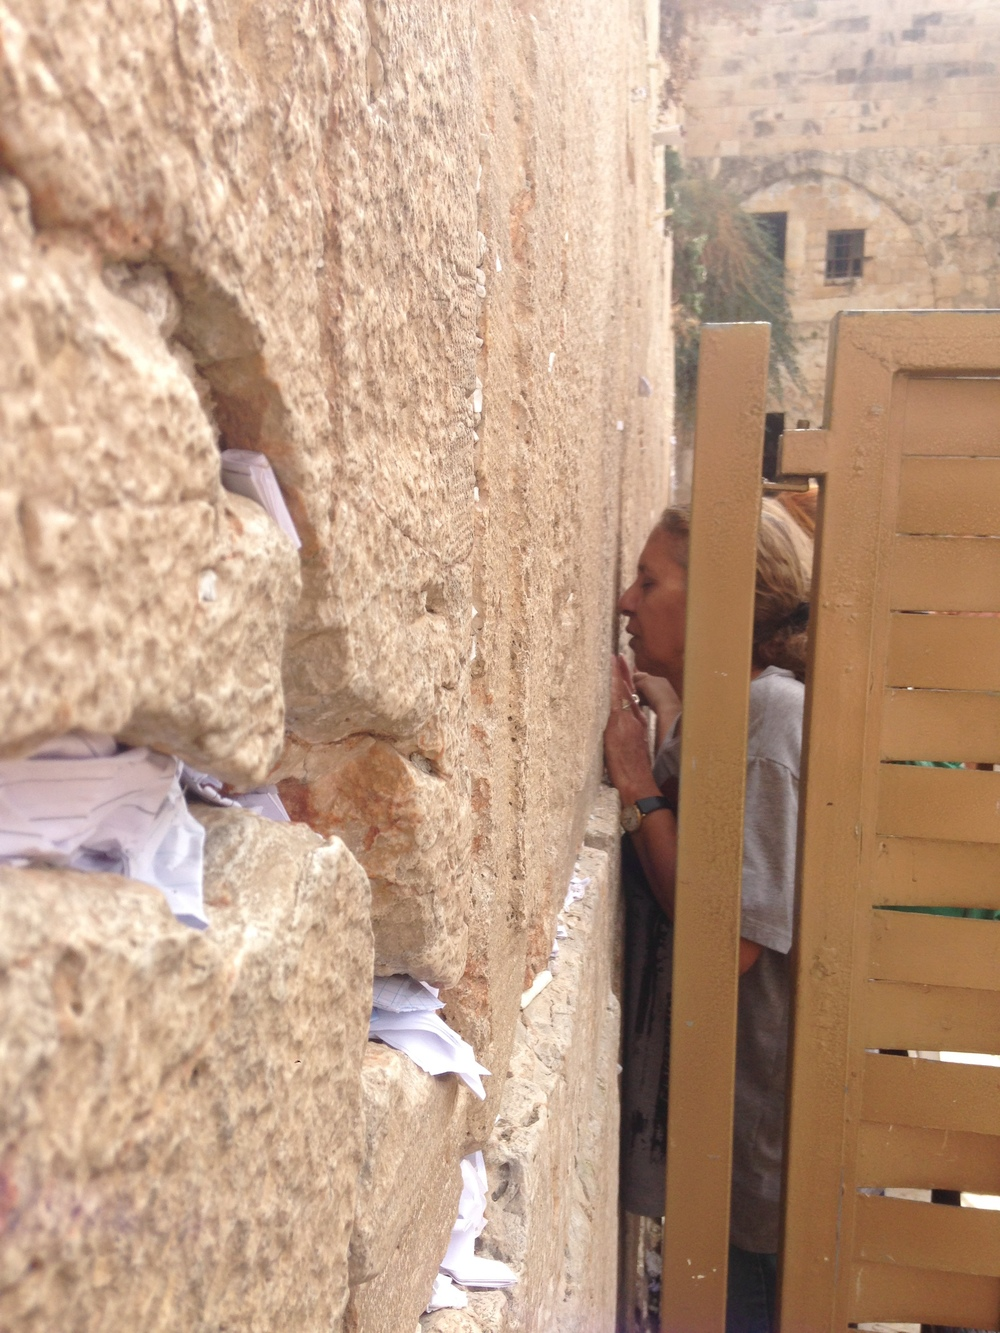 A woman praying at the Western Wall seen from the men's side.